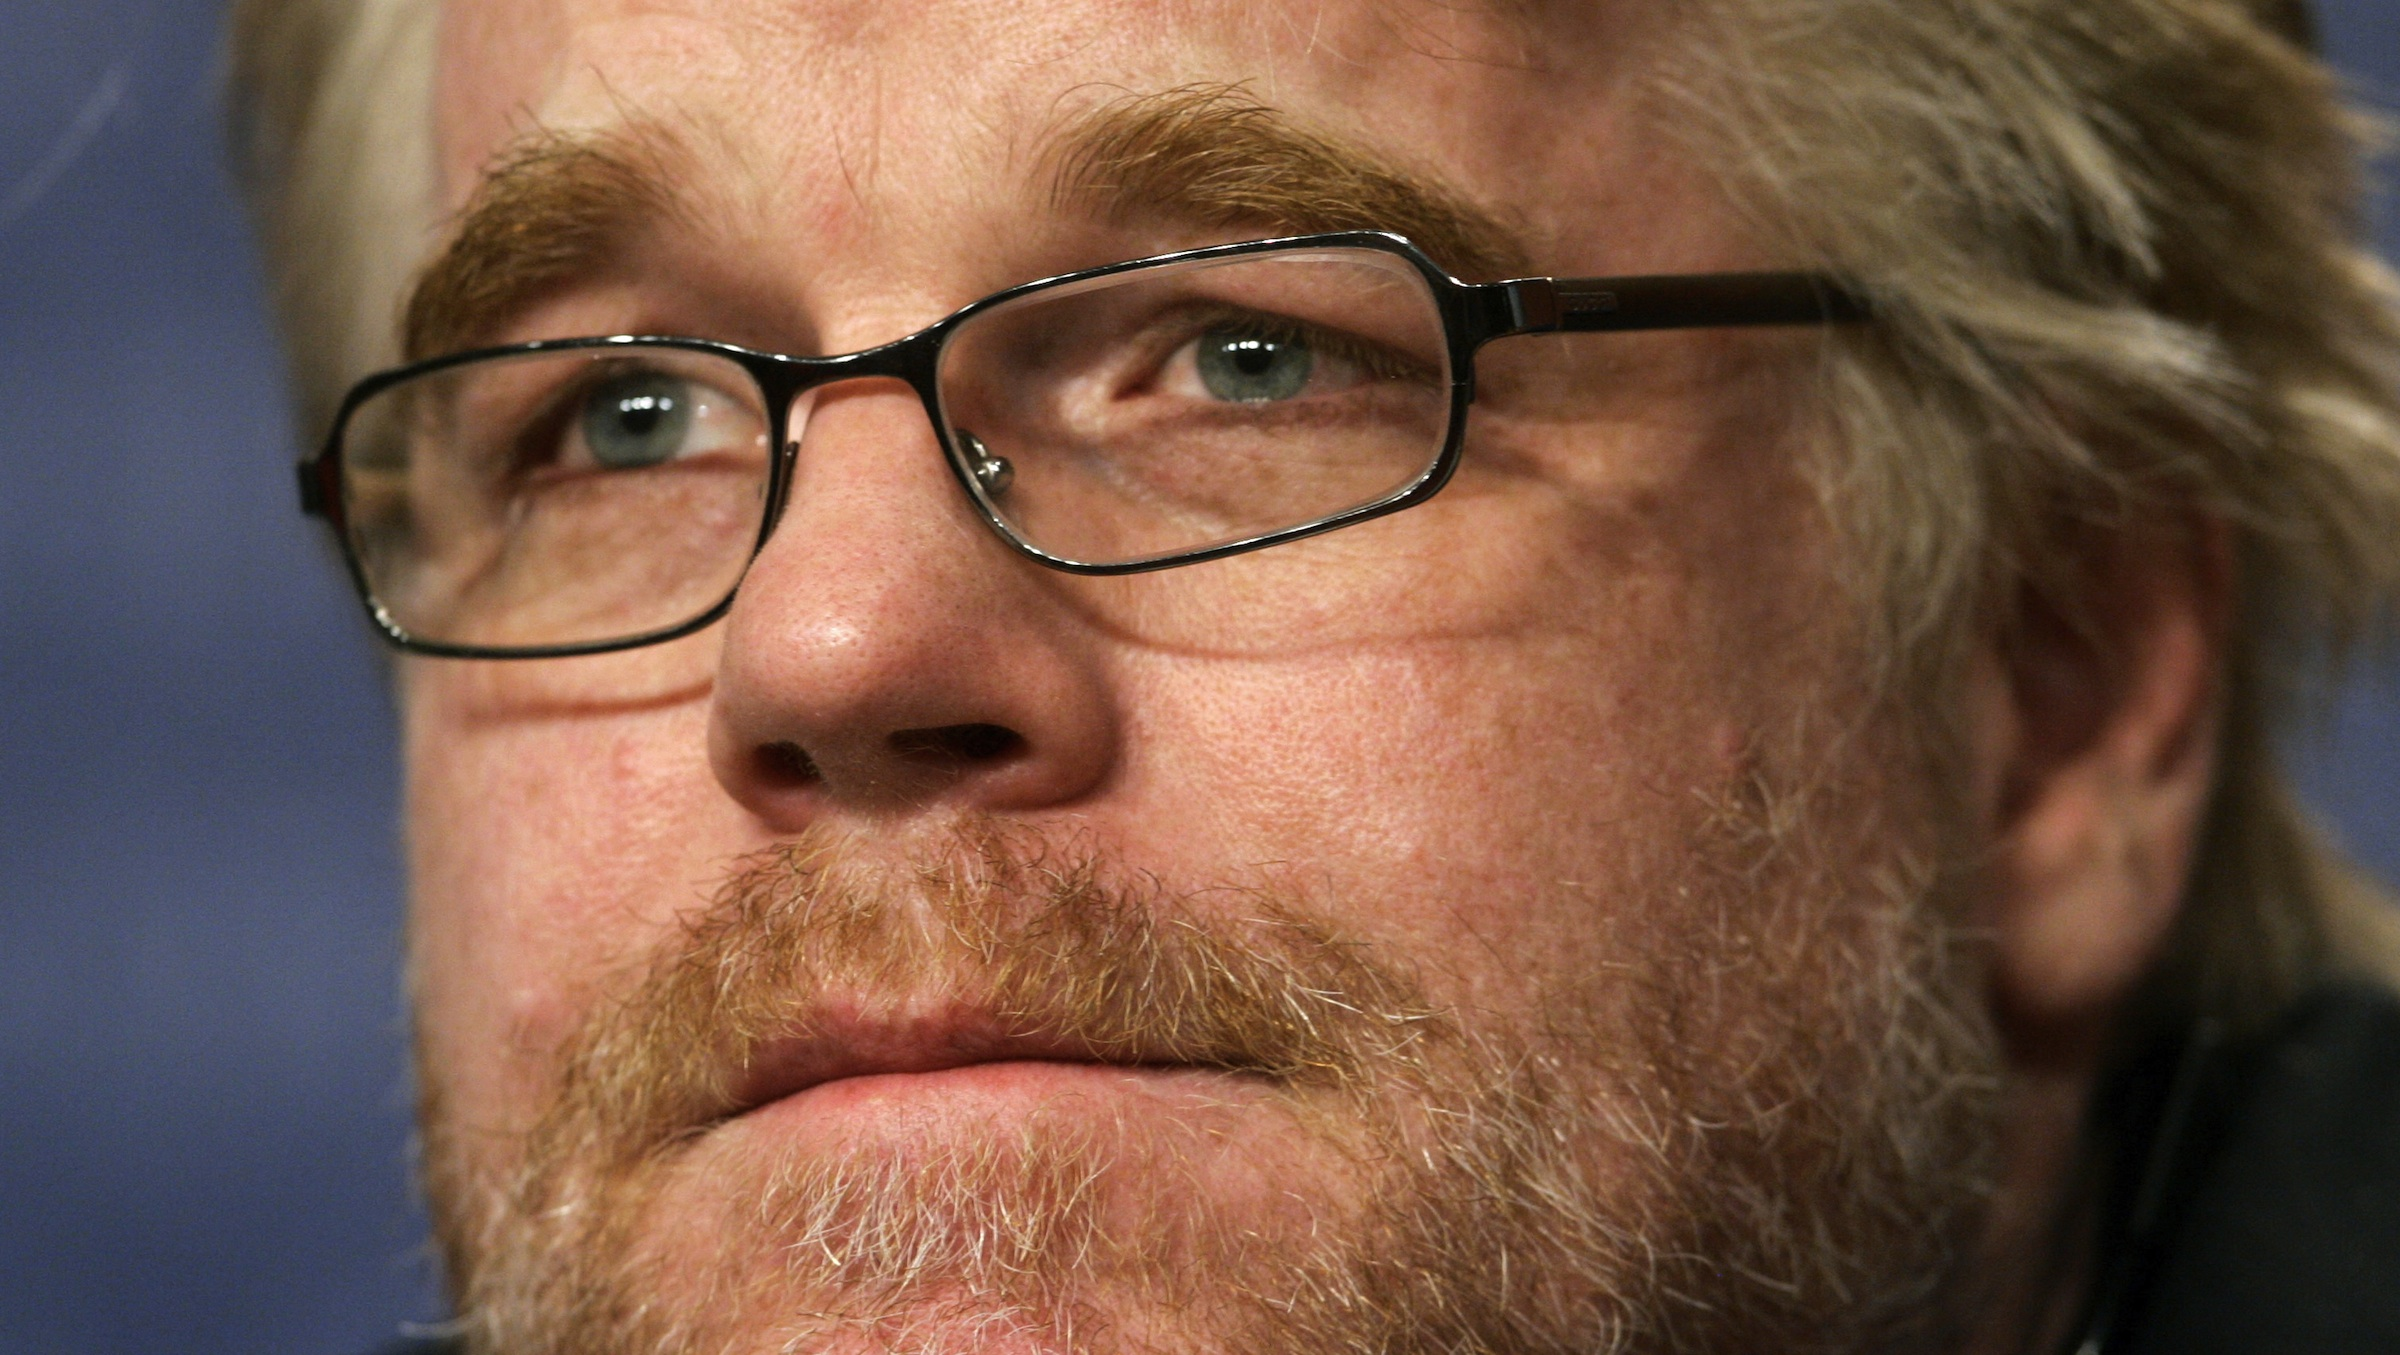 U.S. actor Philip Seymour Hoffman attends a news conference to present his film 'Capote' running out of competition at the 56th Berlinale International Film Festival in Berlin February 17, 2006. The festival runs from February 9-19. REUTERS/Arnd Wiegmann - RTR1B6SR